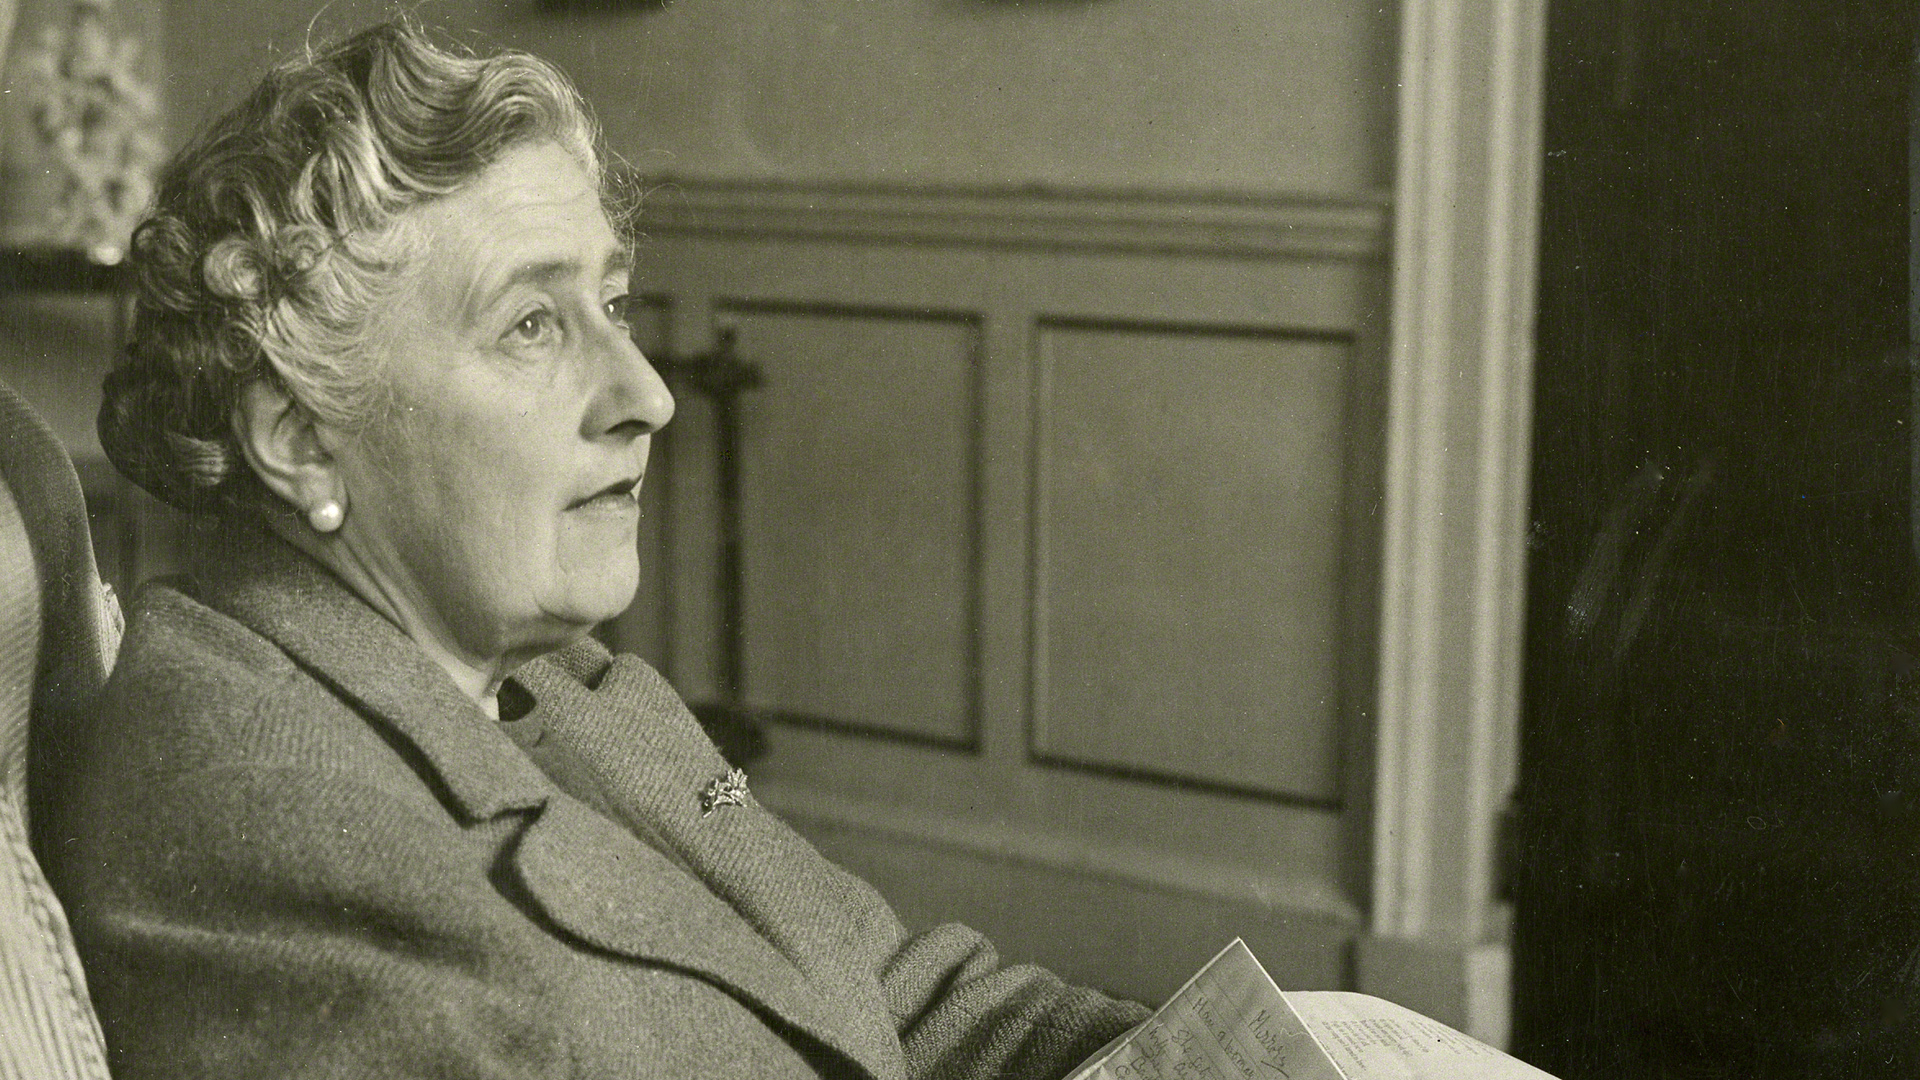 A photo portrait of Agatha Christie, the most successful writer of all time, wrote 66 murder mysteries and several plays, including the longest-running play ever, The Mousetrap.